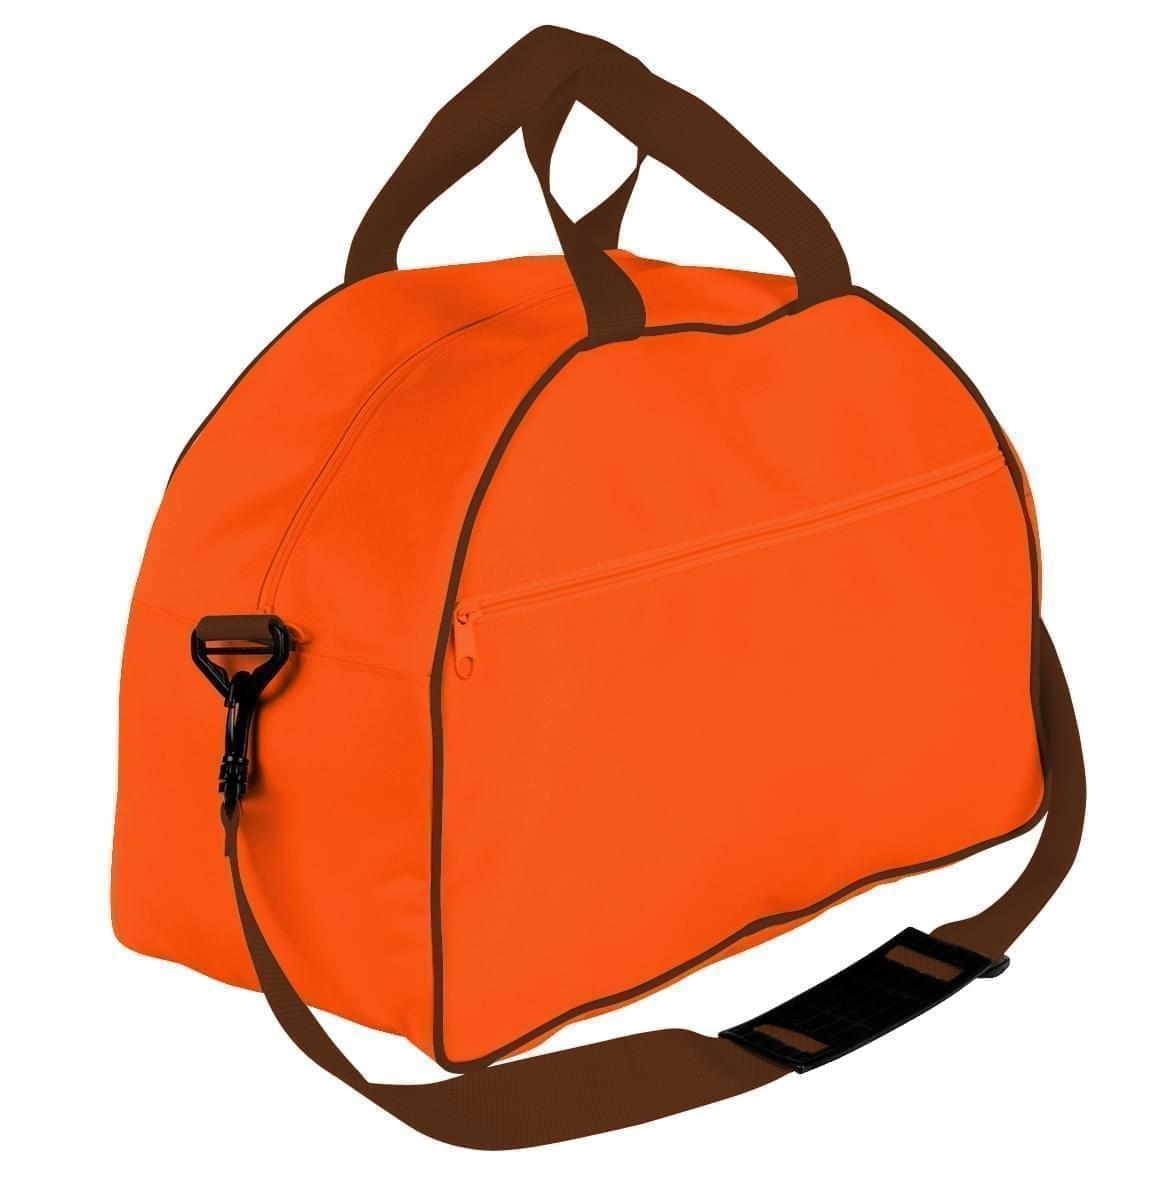 USA Made Nylon Poly Weekender Duffel Bags, Orange-Brown, 6PKV32JAXS